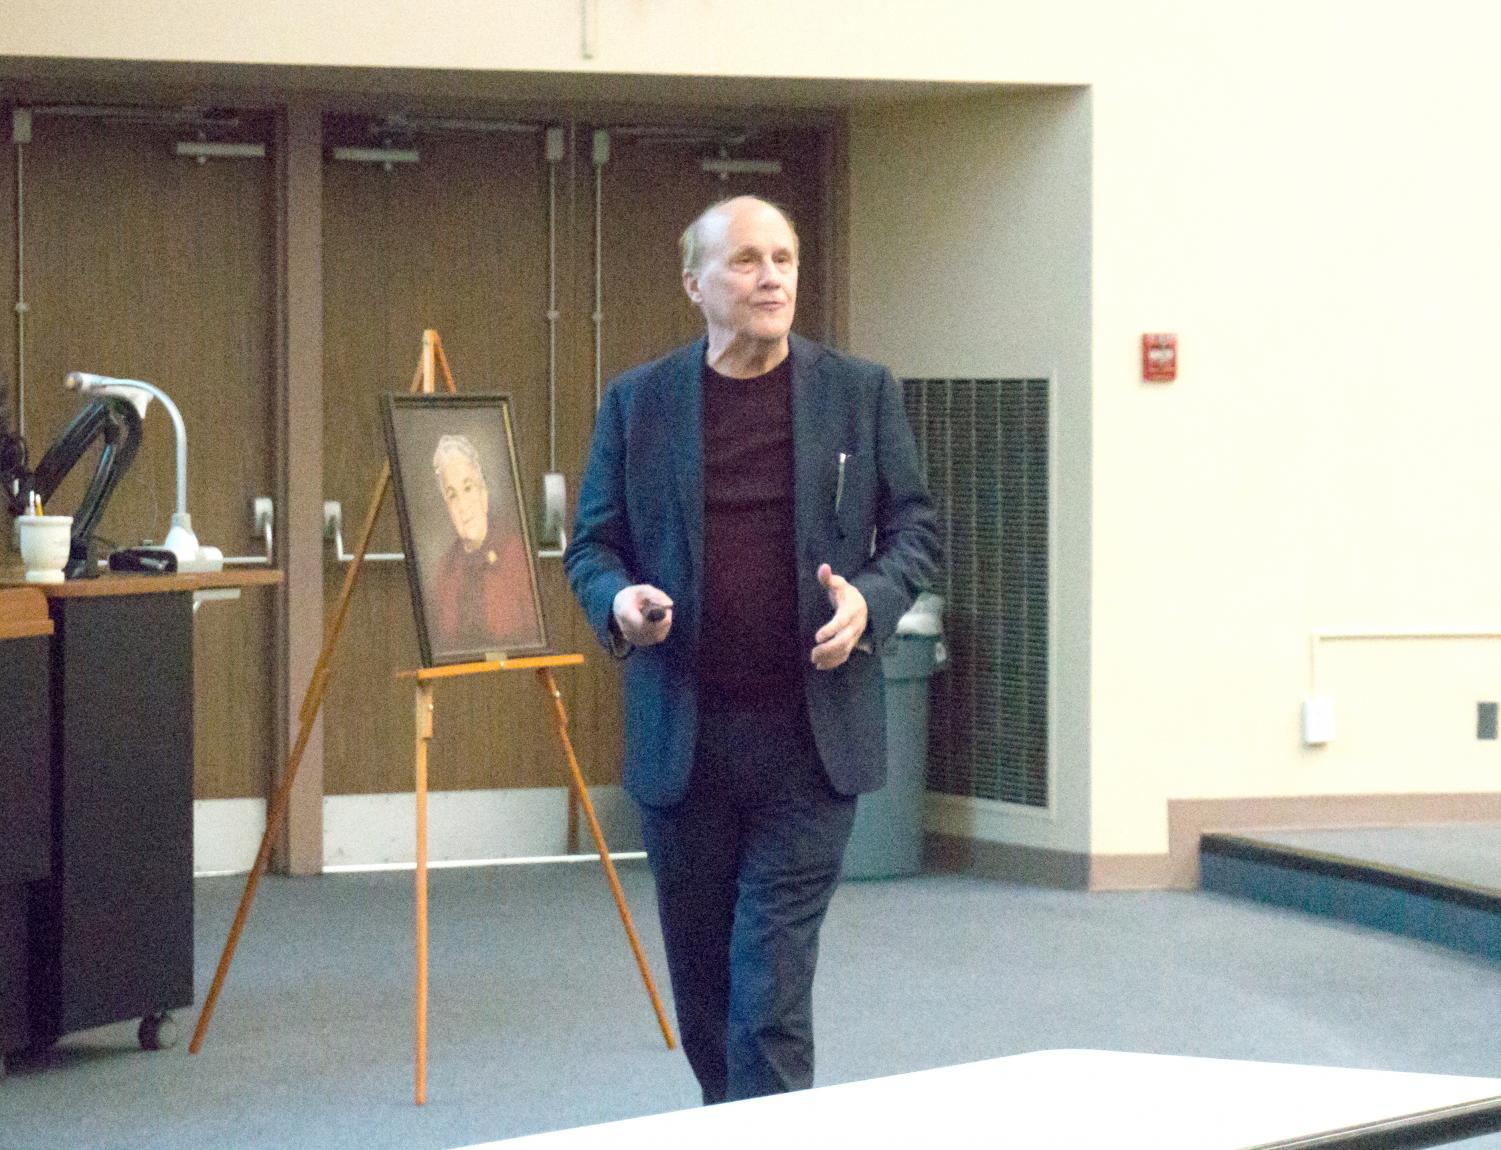 Pownall speaks about his research efforts, Catherine Bone is pictured behind him.